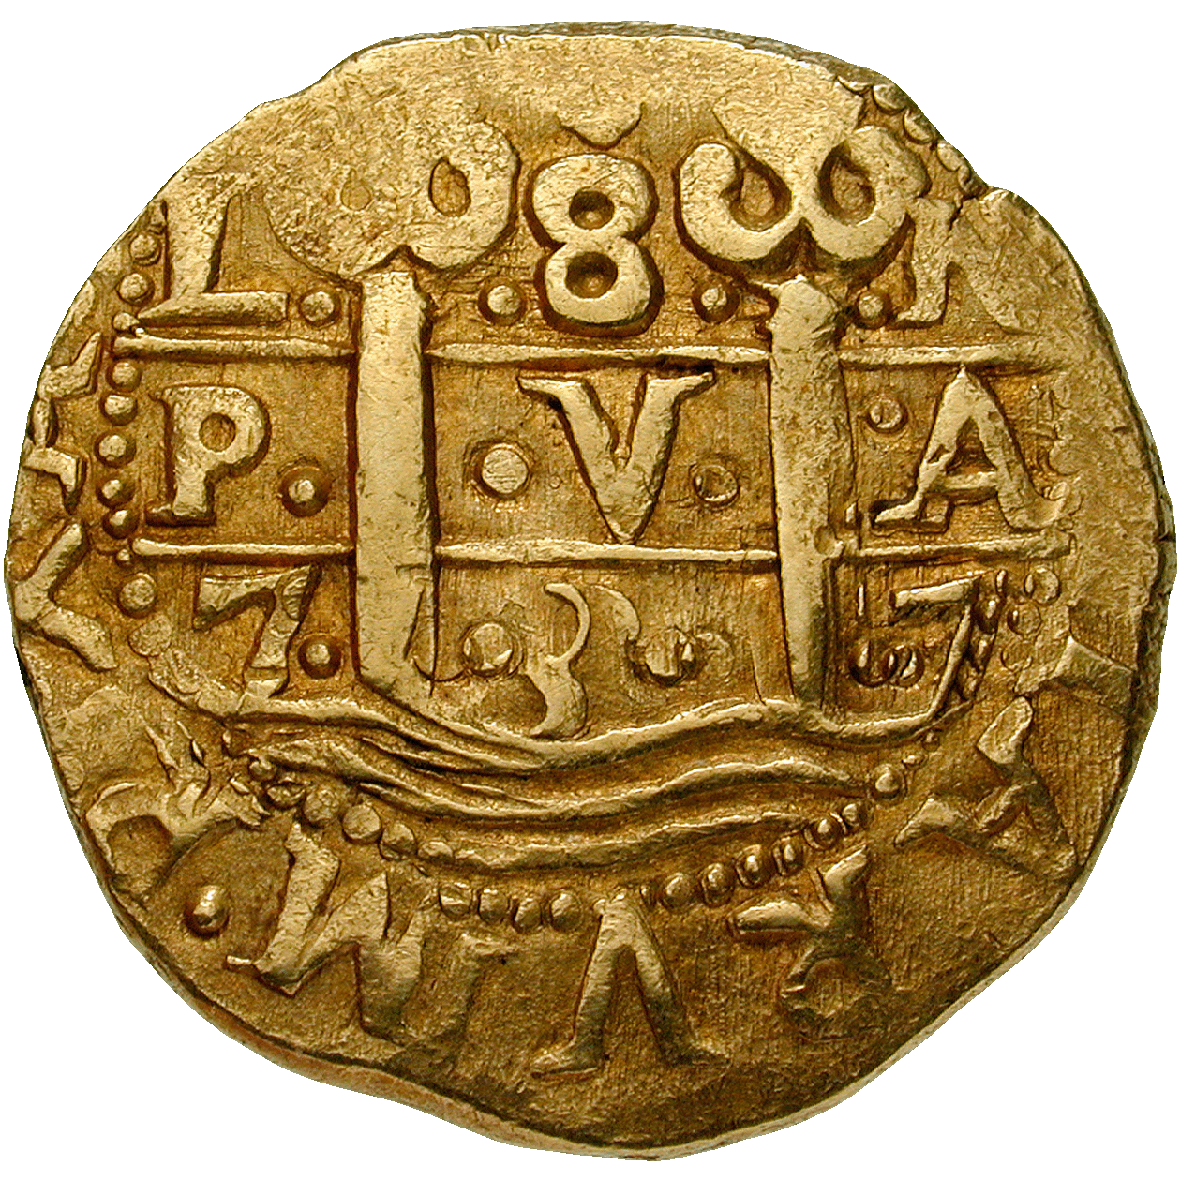 Viceroyalty of New Spain, Philip V, Doubloon of 8 Escudos (Onza) (reverse)